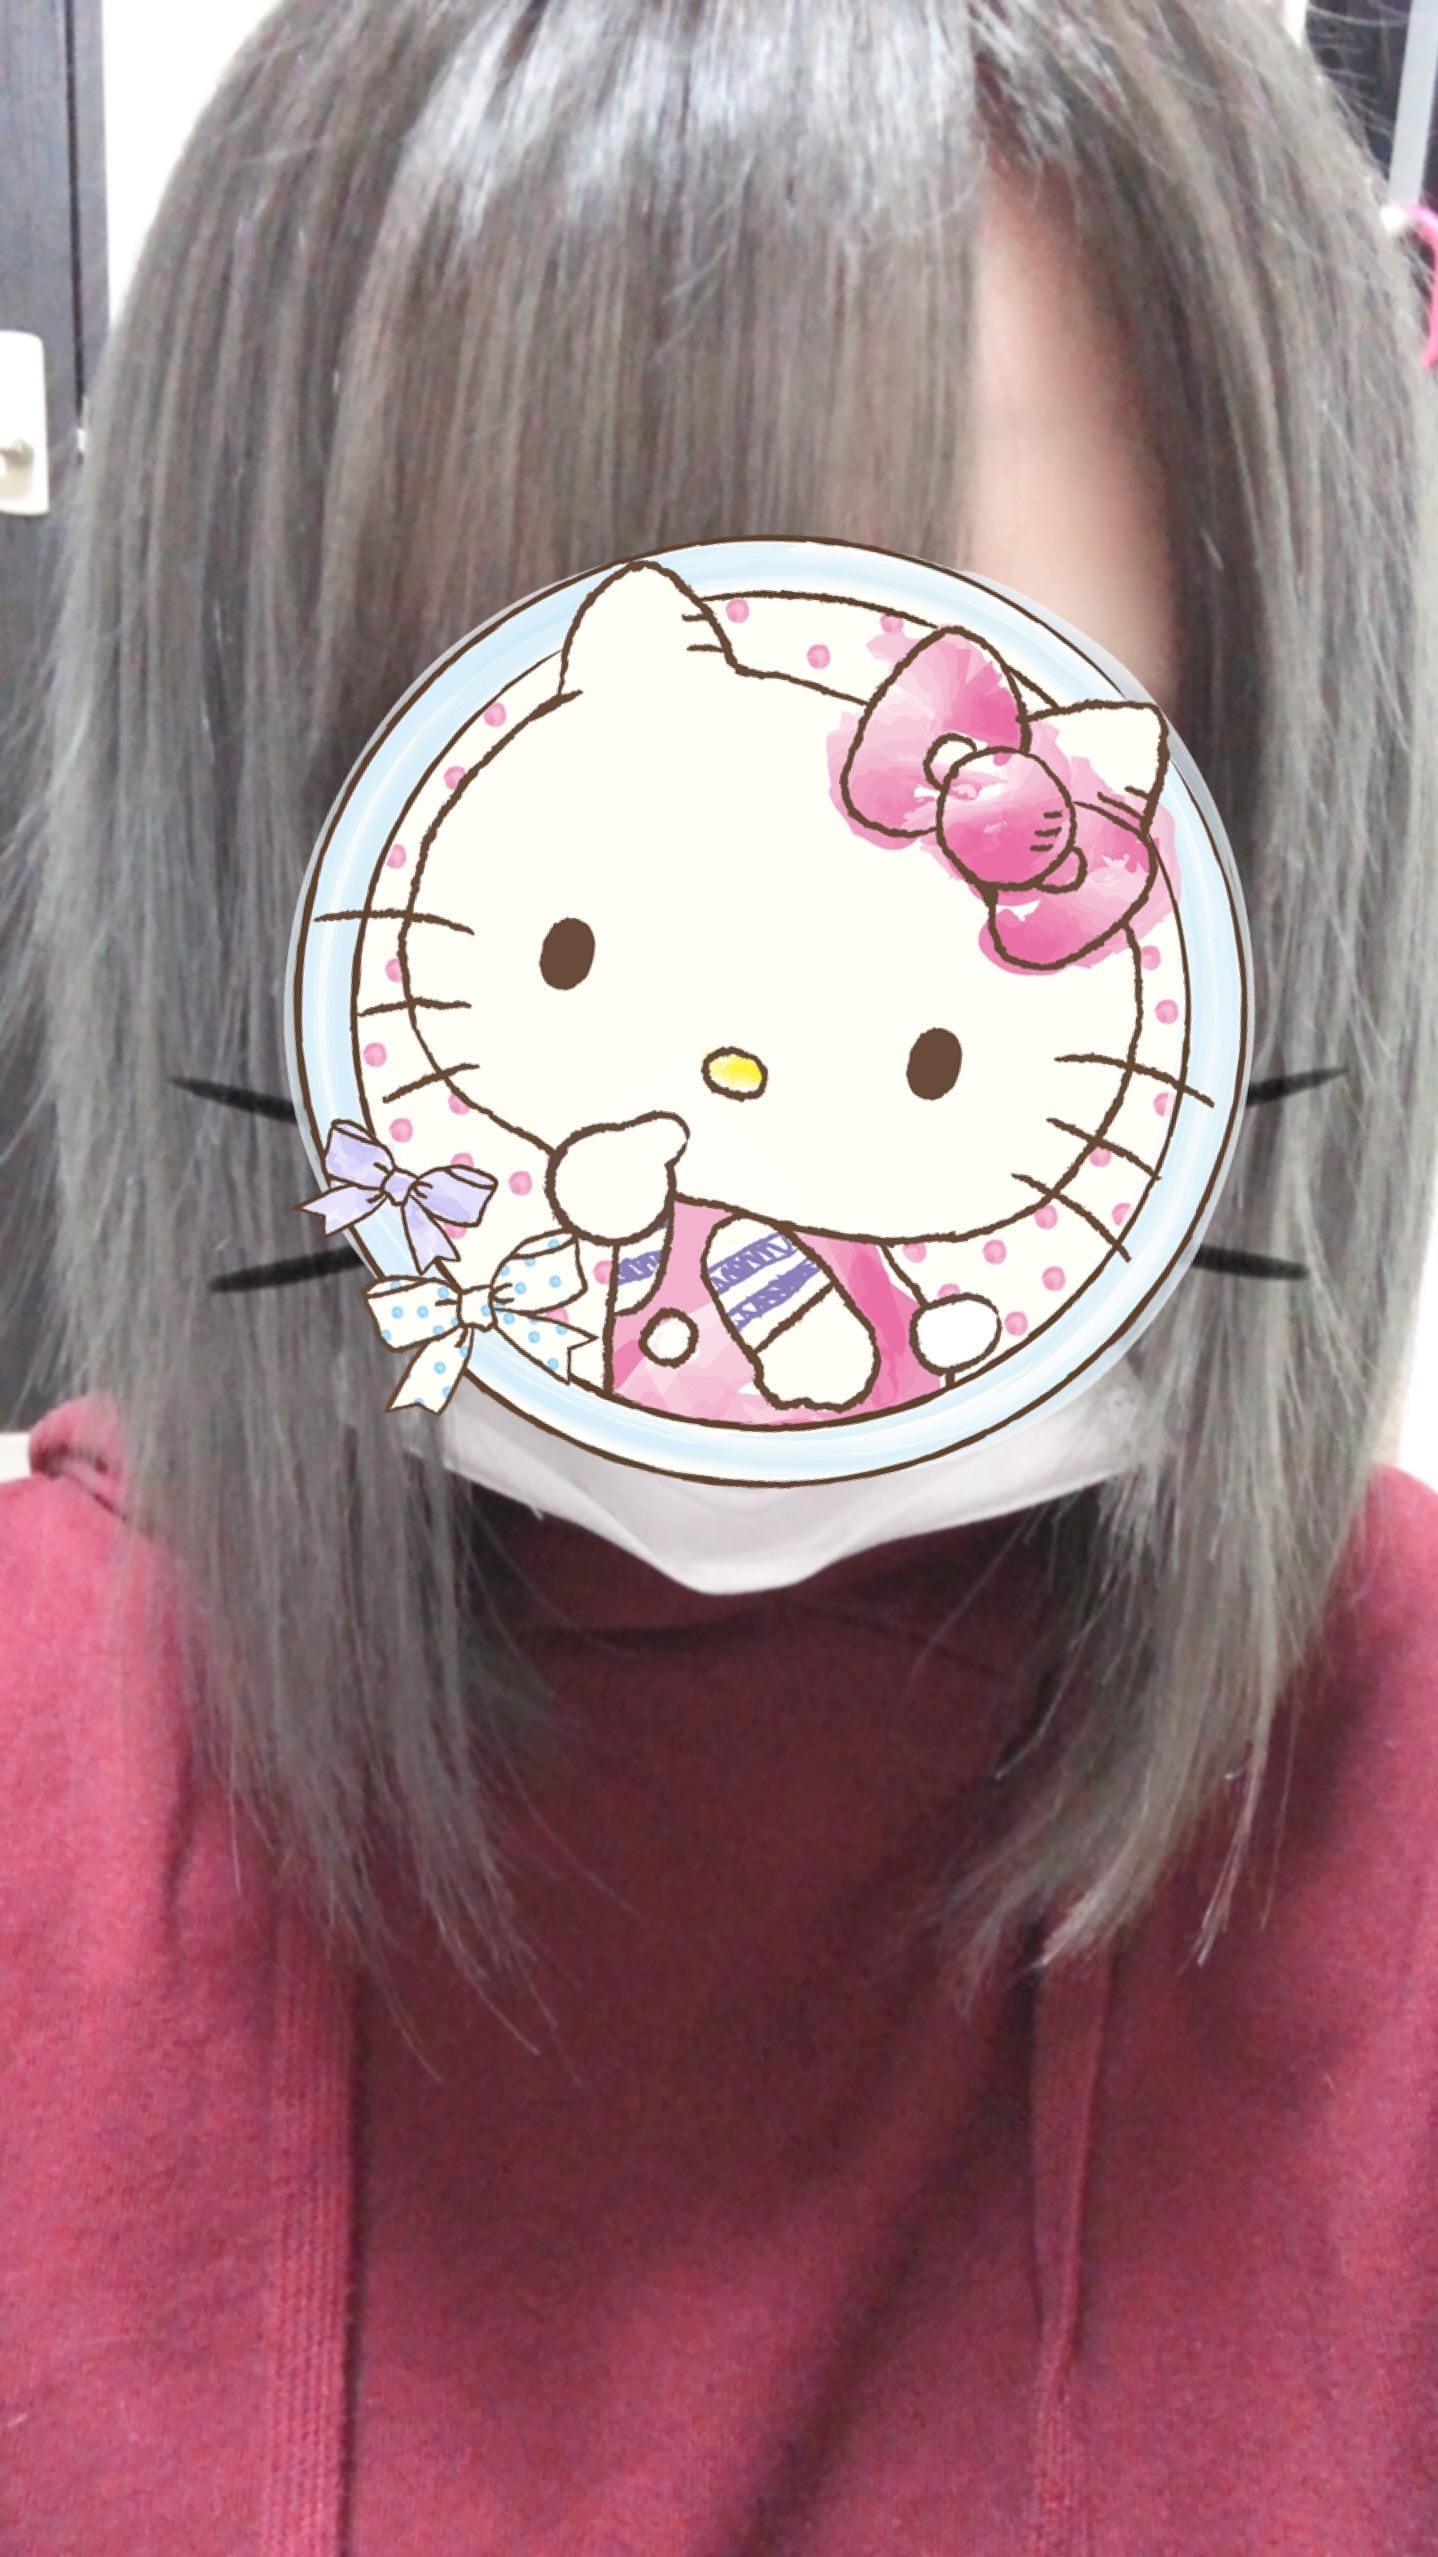 「NEWhair??」11/28(11/28) 20:56 | るかの写メ・風俗動画